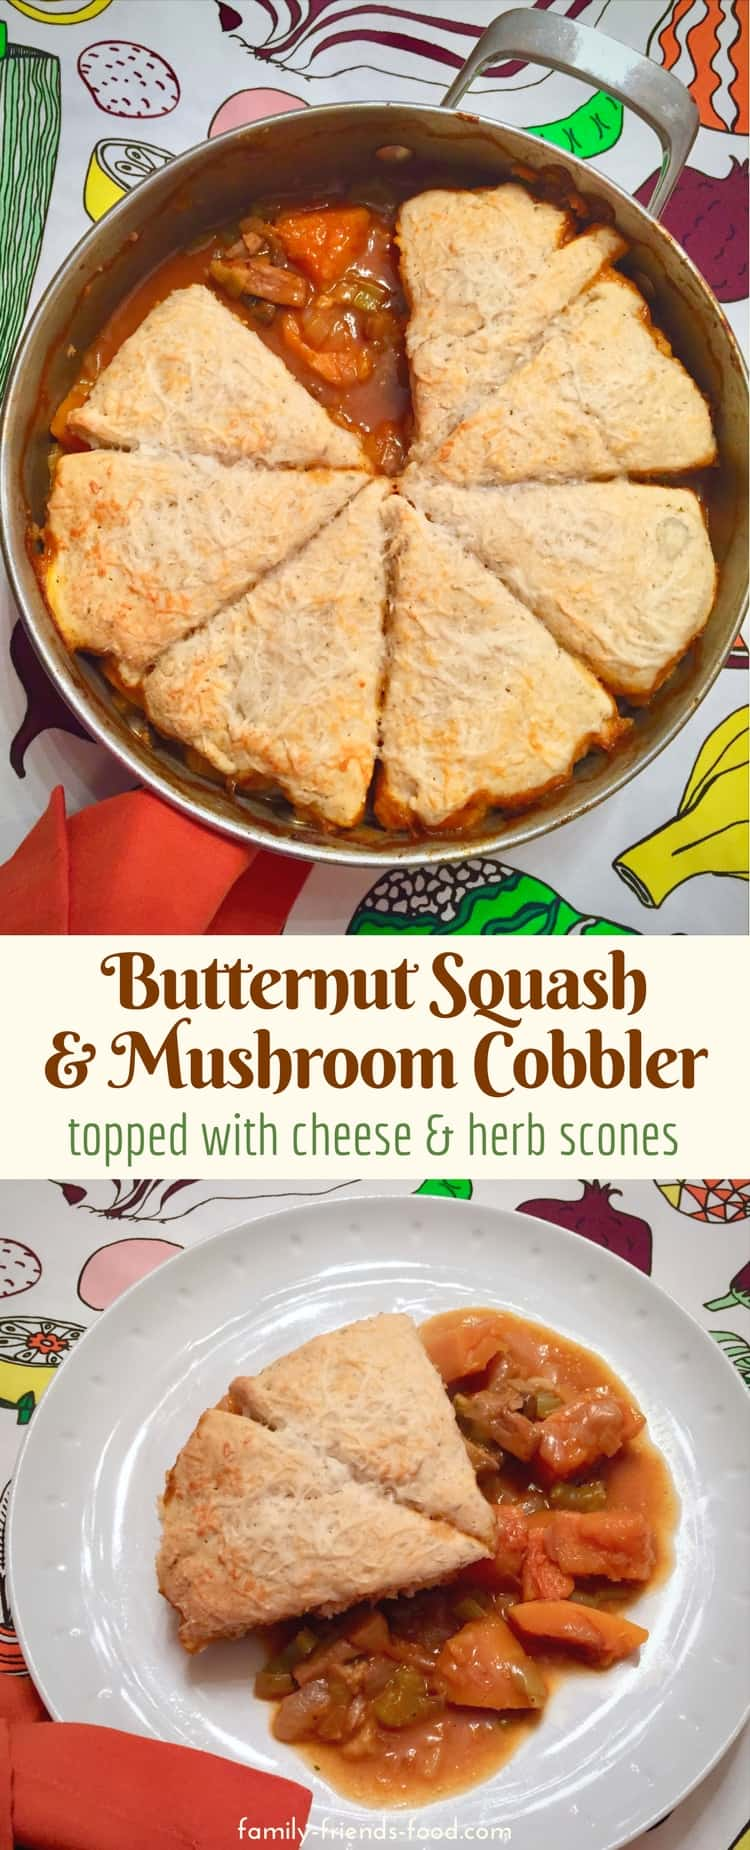 Chunky squash & chestnut mushrooms are cooked in a rich flavoursome veg-packed sauce and topped with fluffy cheese & herb scones to create a wonderful vegetarian family dinner. This savoury cobbler is comfort food at its finest.